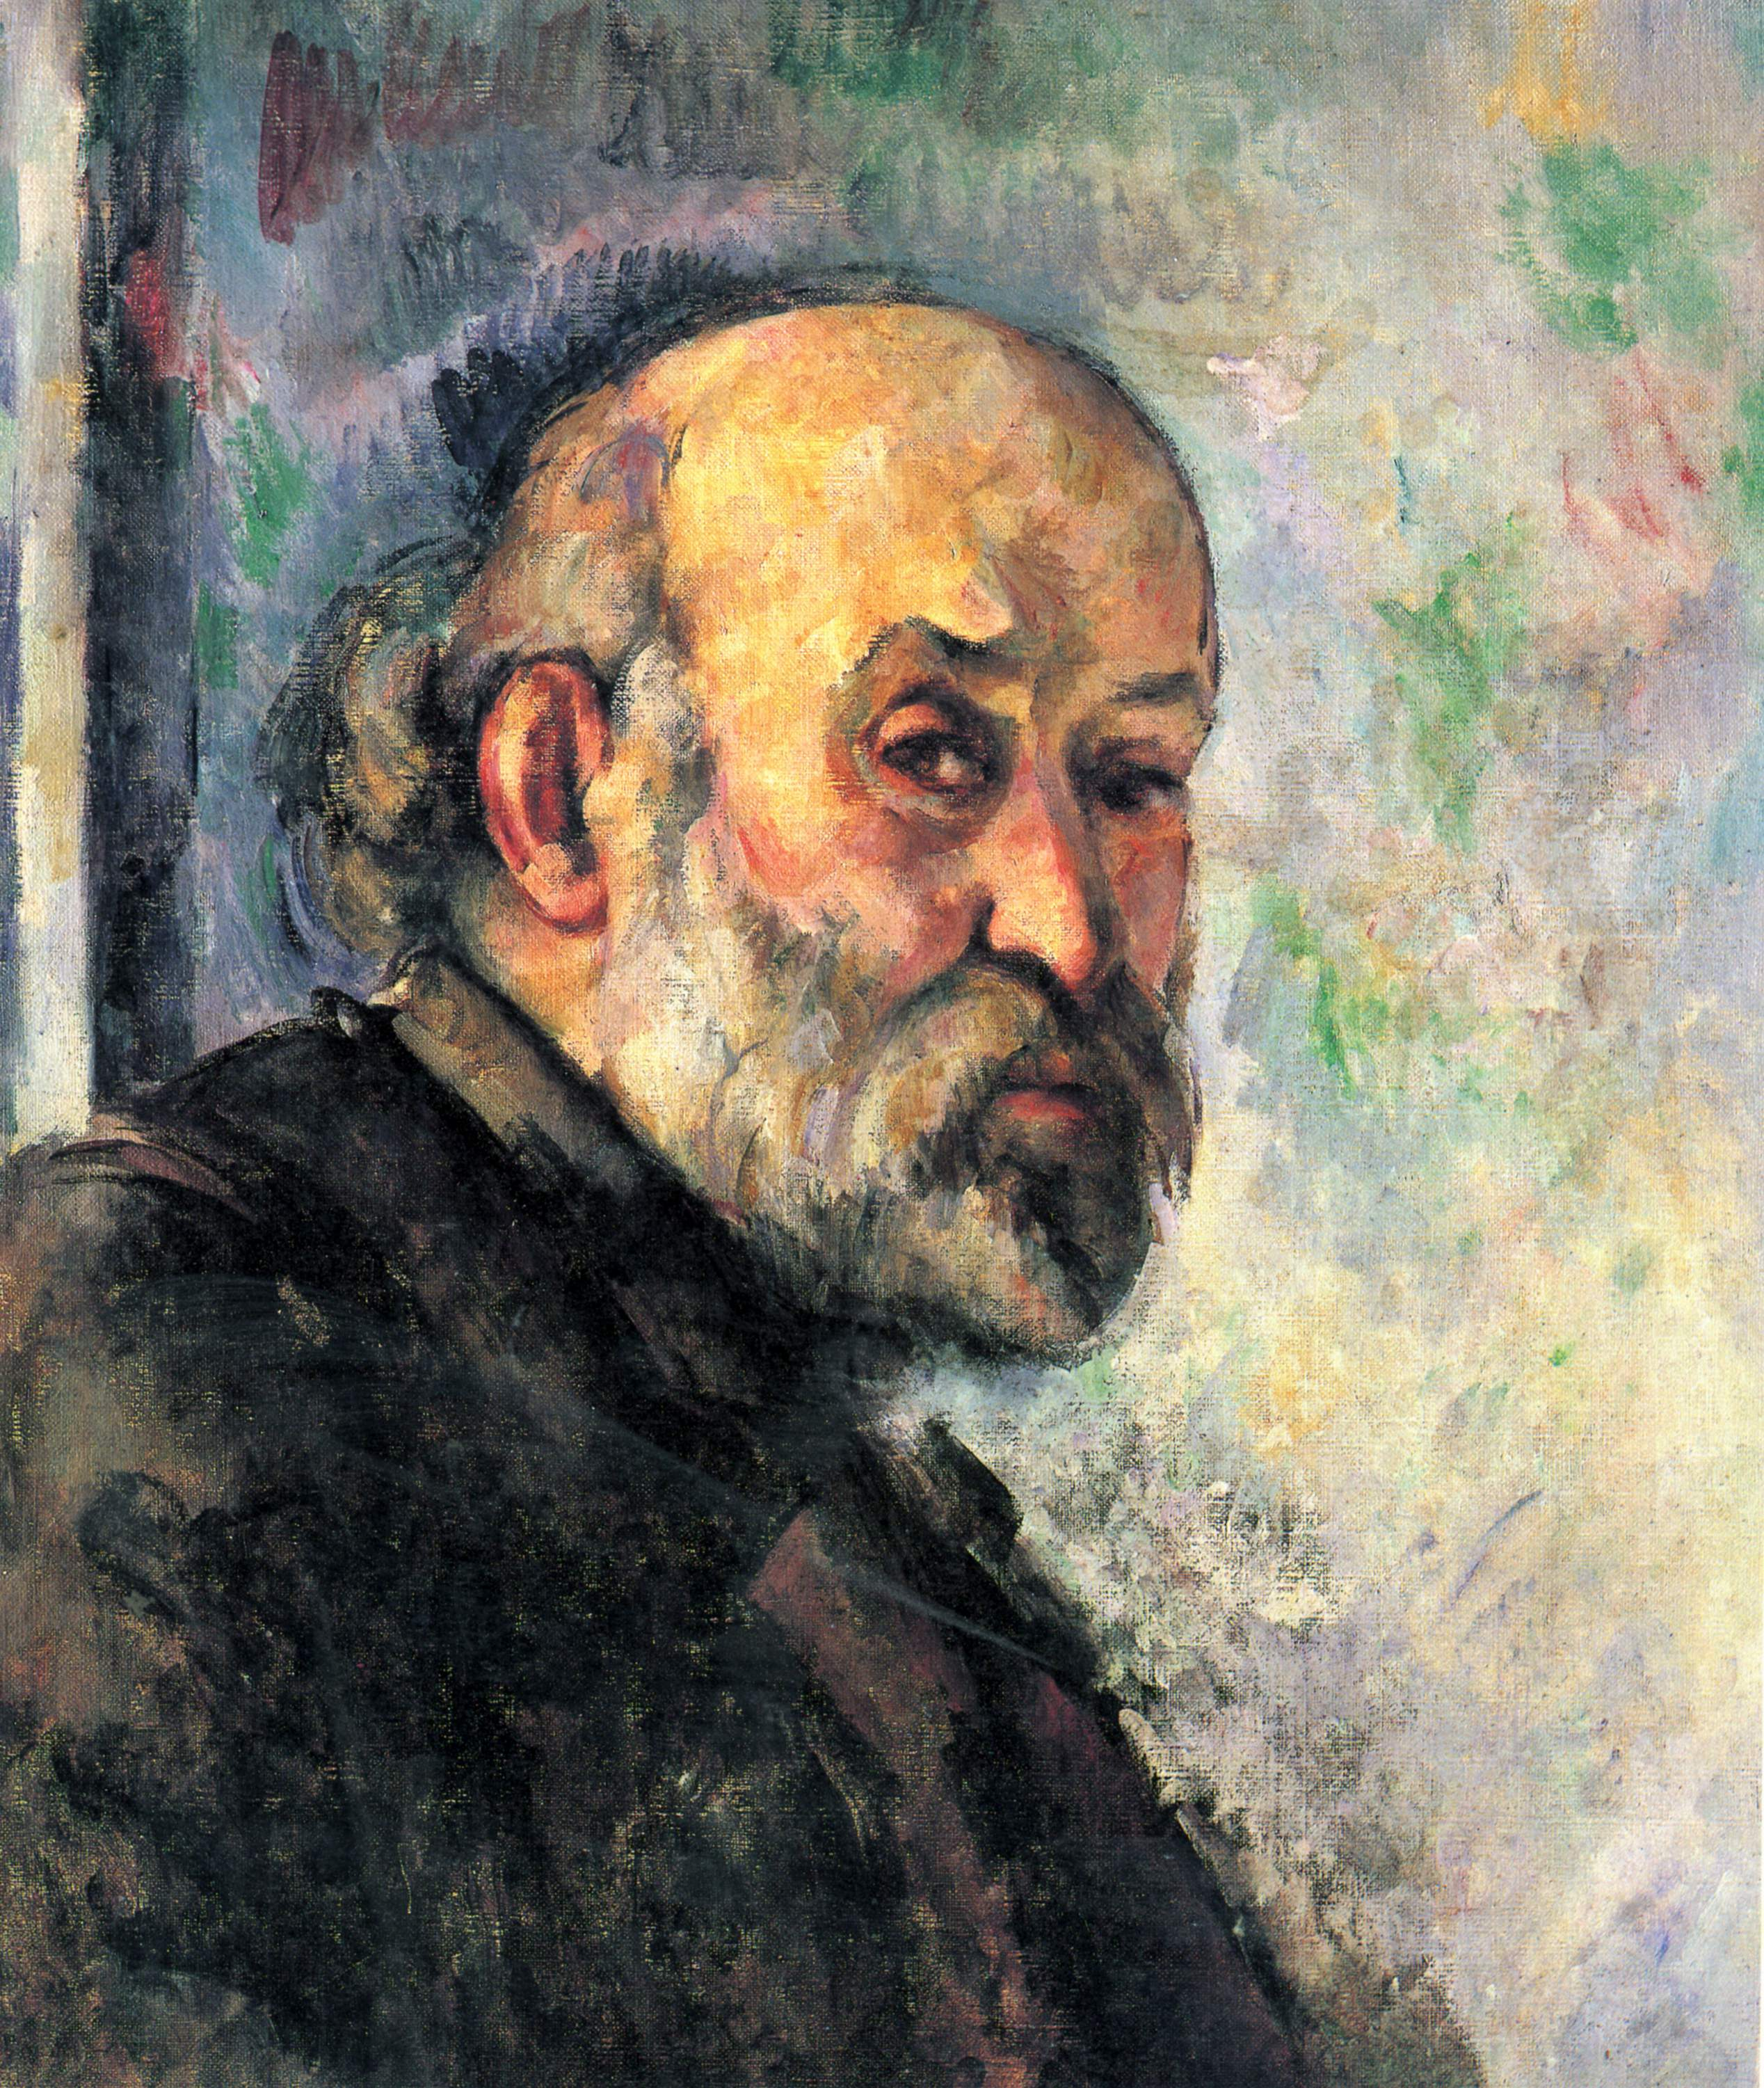 https://media.thisisgallery.com/wp-content/uploads/2018/12/paulcezanne-1.jpg